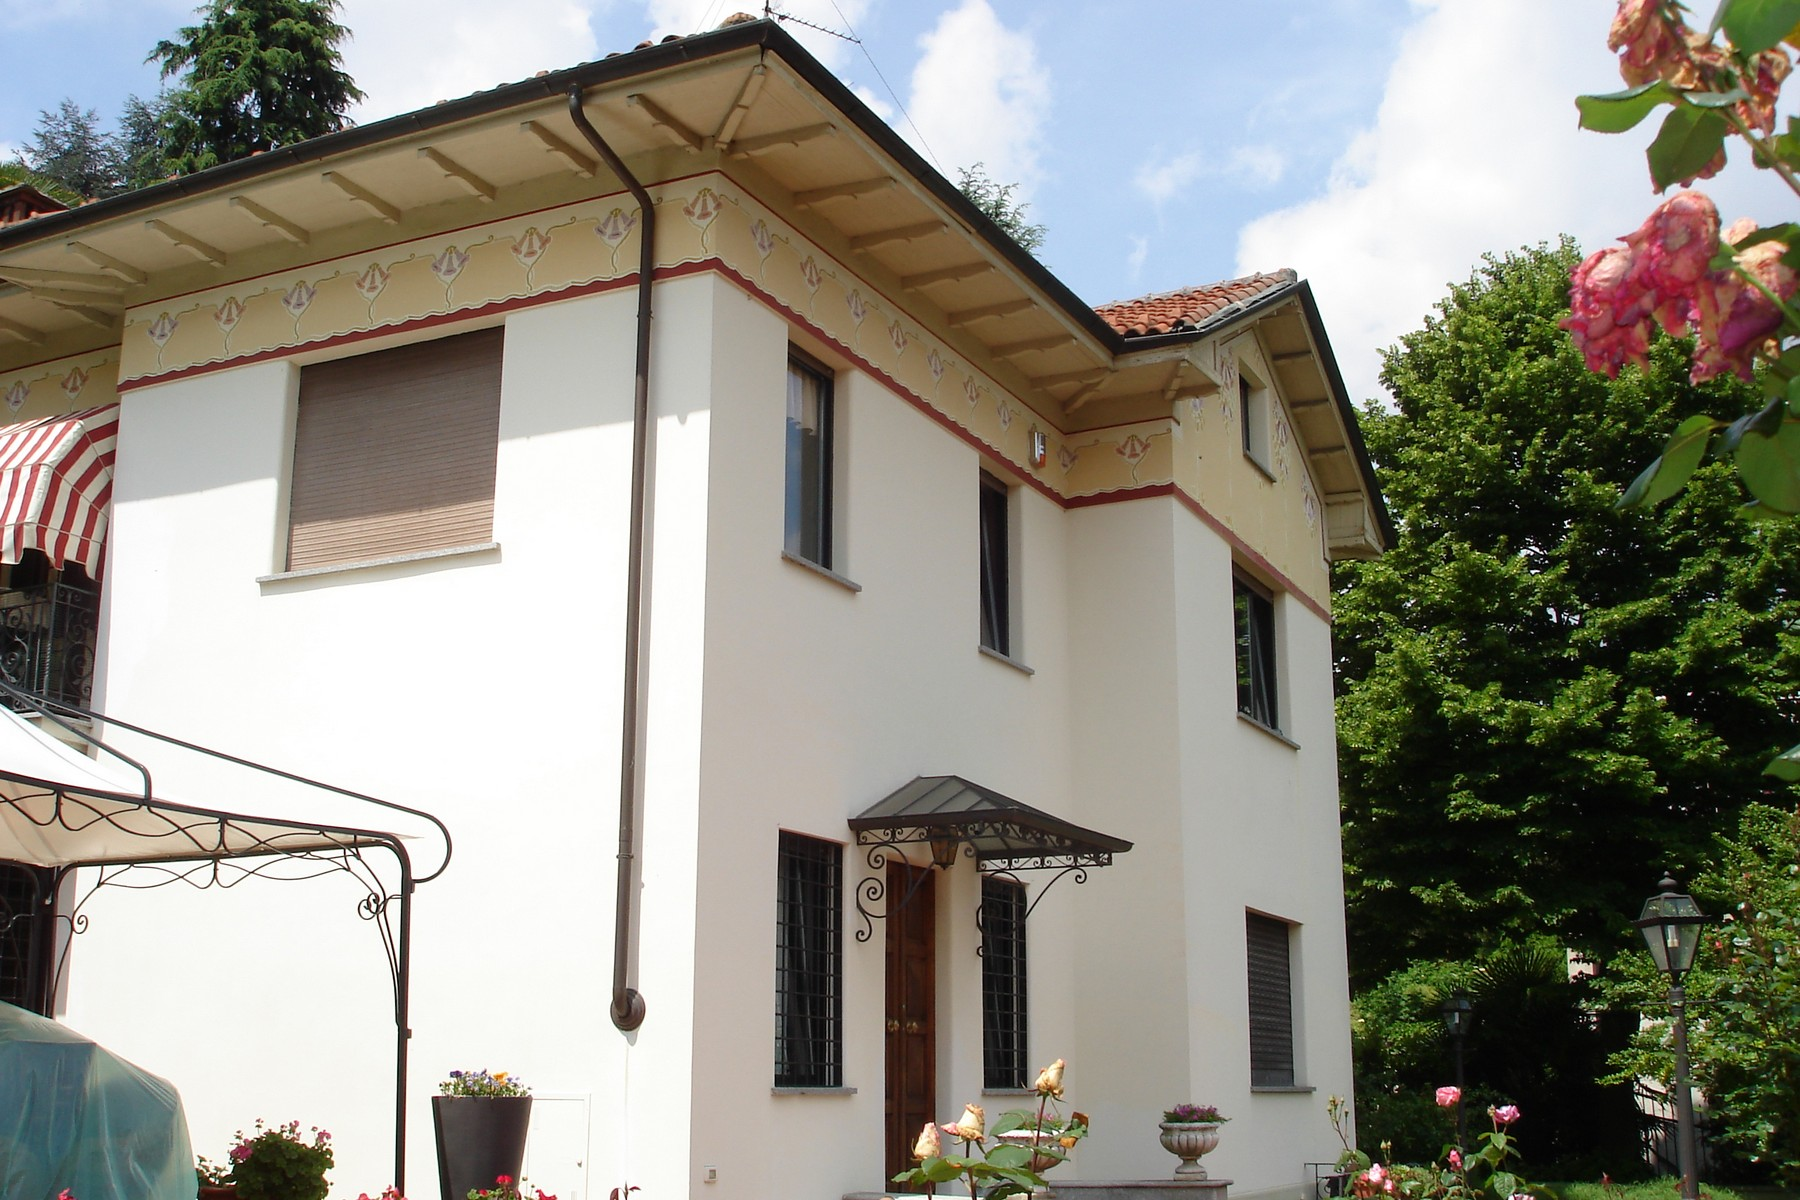 Additional photo for property listing at Beautiful family sized villa on the first hill of the city Viale Venticinque Aprile Torino, Turin 10133 Italy